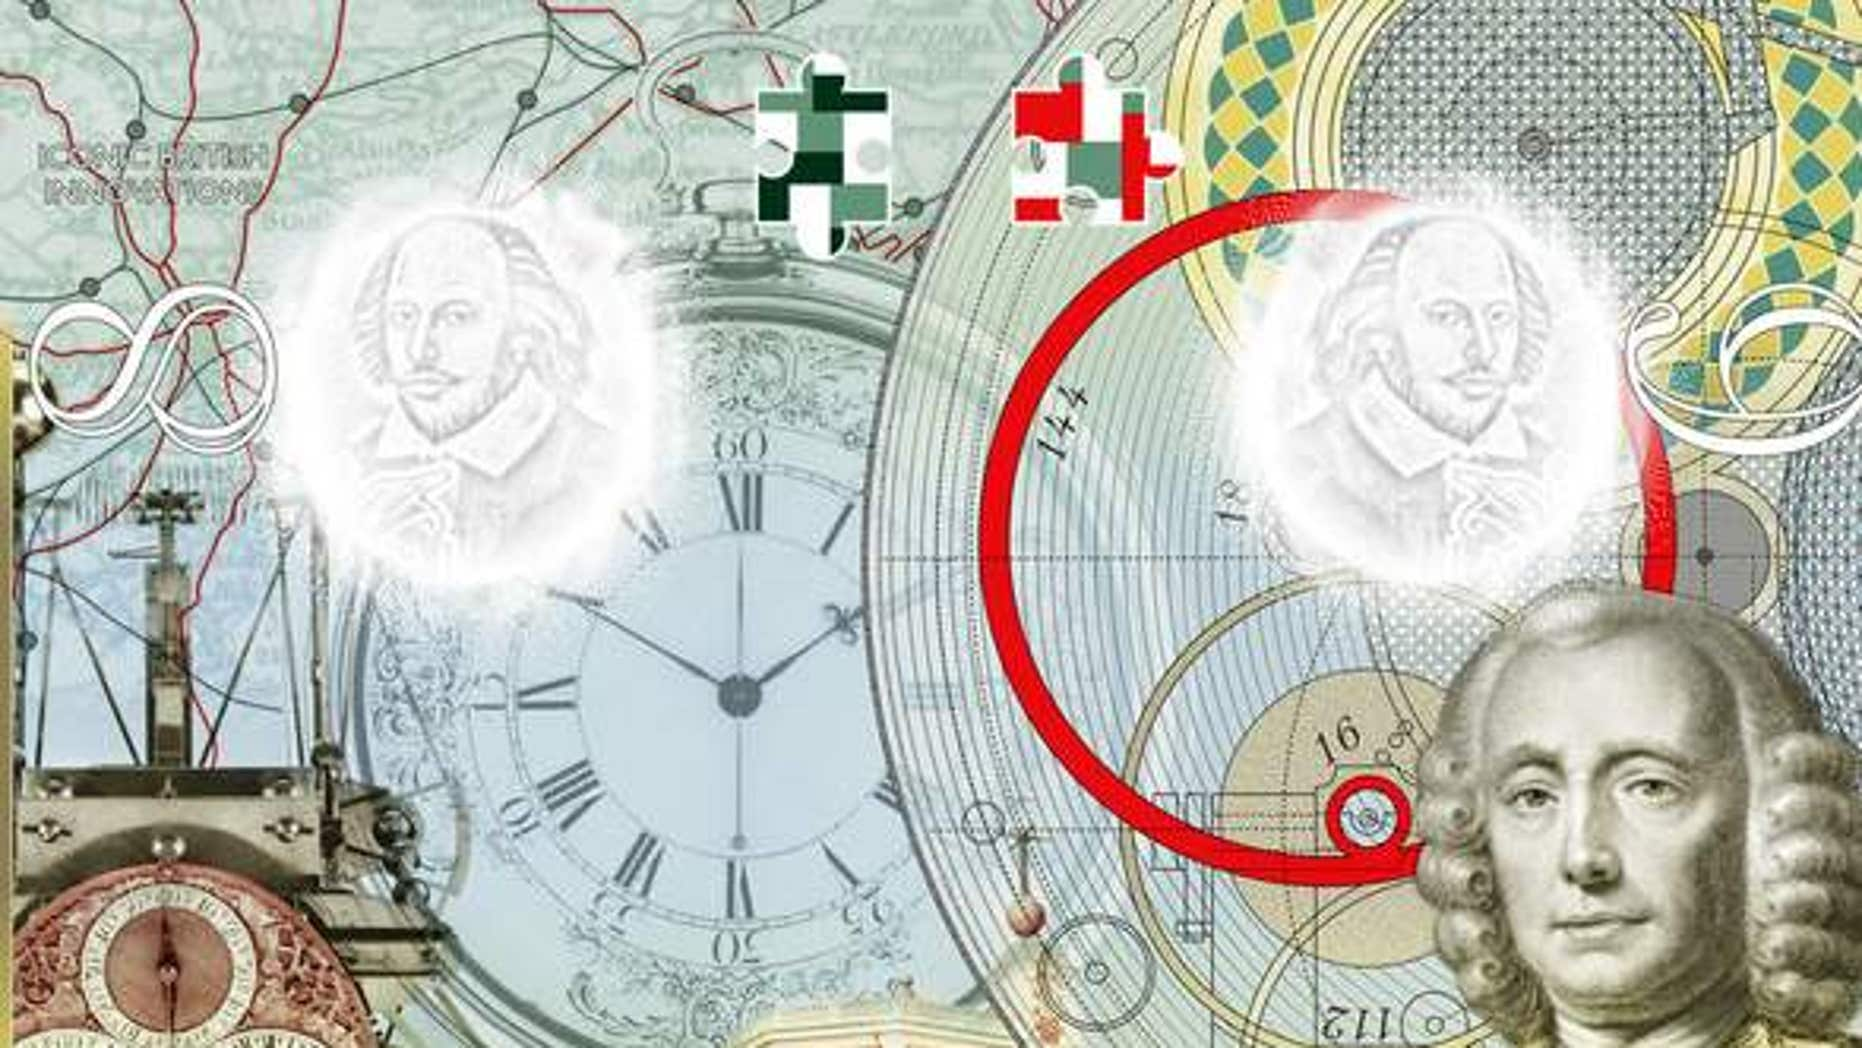 John Harrison is featured in the passport for his work designing the marine clock.